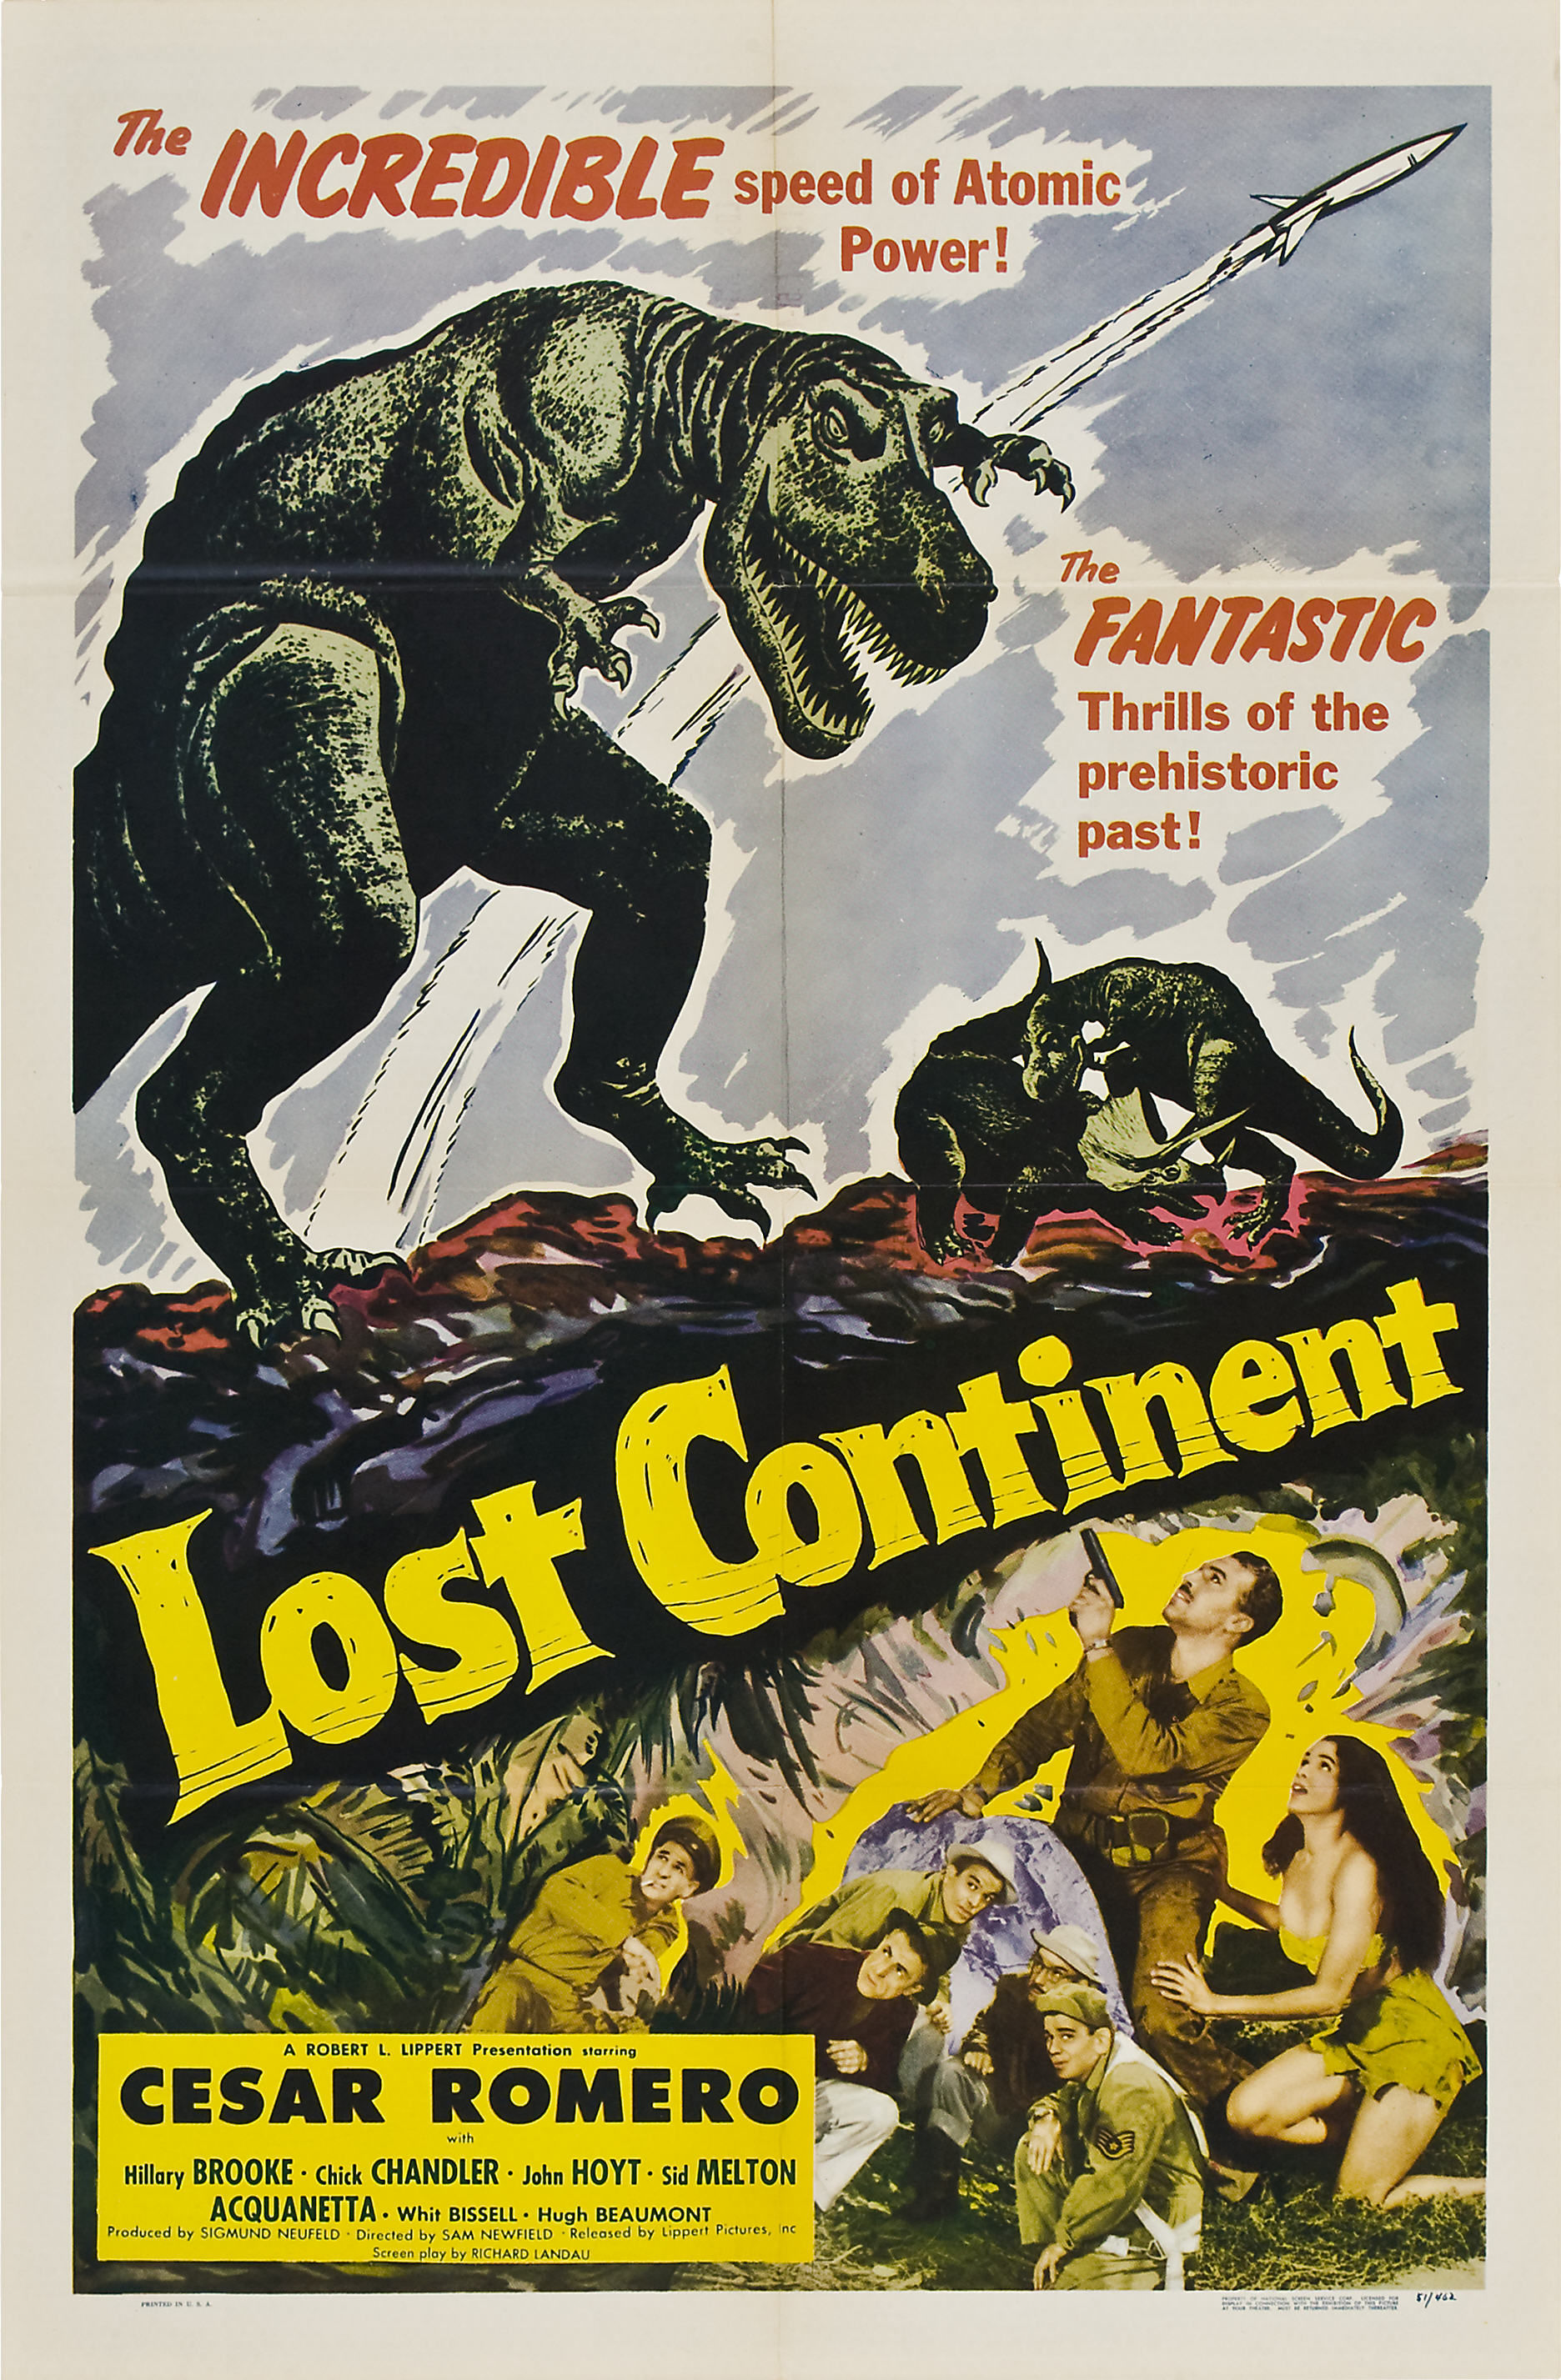 lost_continent_poster_1951_01.jpg